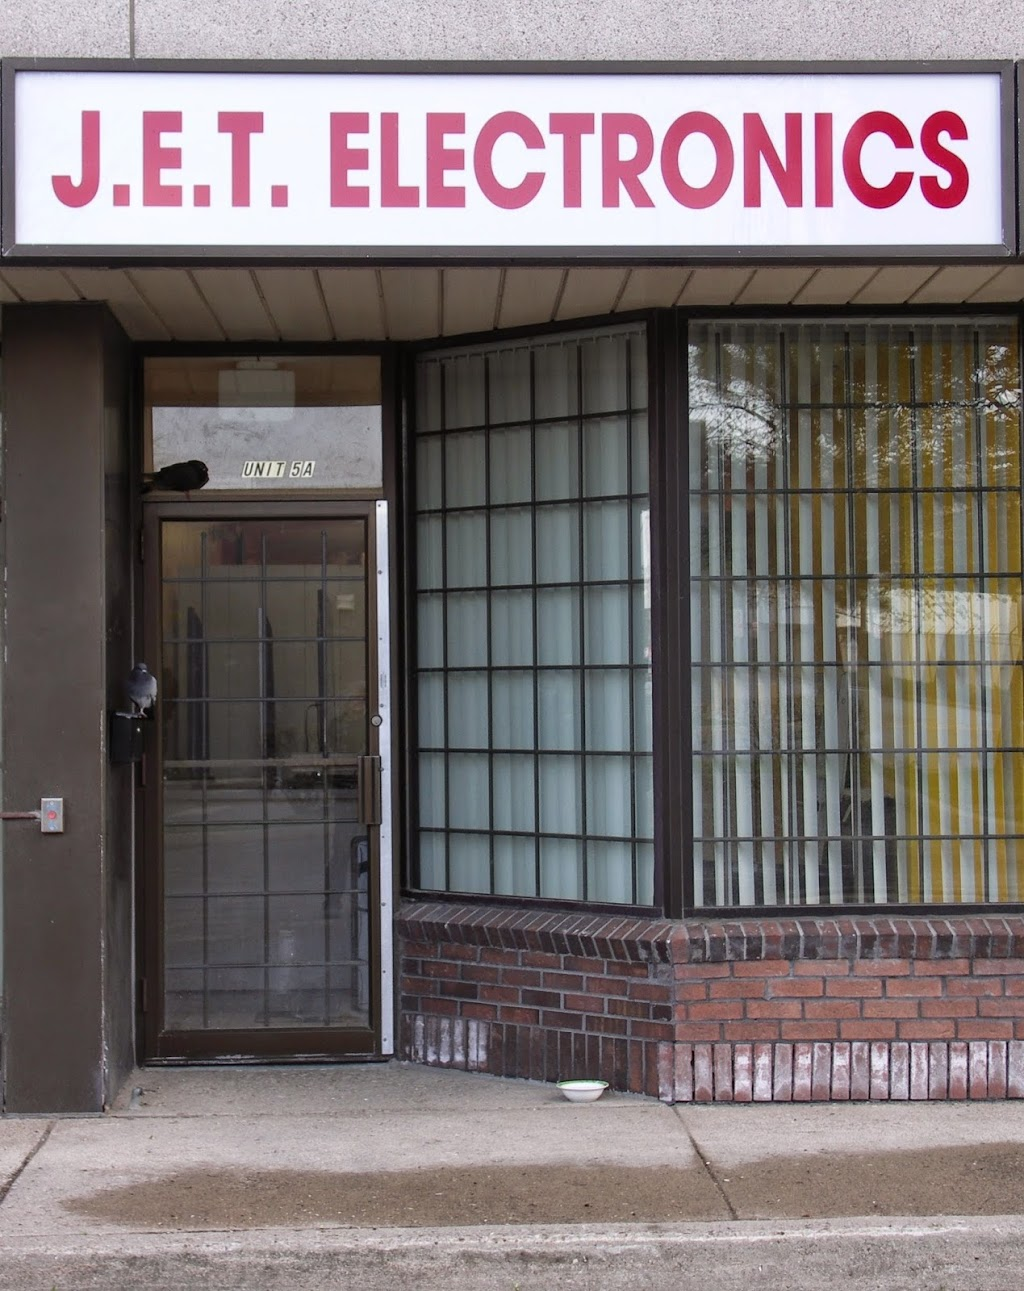 Jet Electronics Repair | home goods store | 5143 Tomken Rd, Mississauga, ON L4W 3W4, Canada | 9056021613 OR +1 905-602-1613